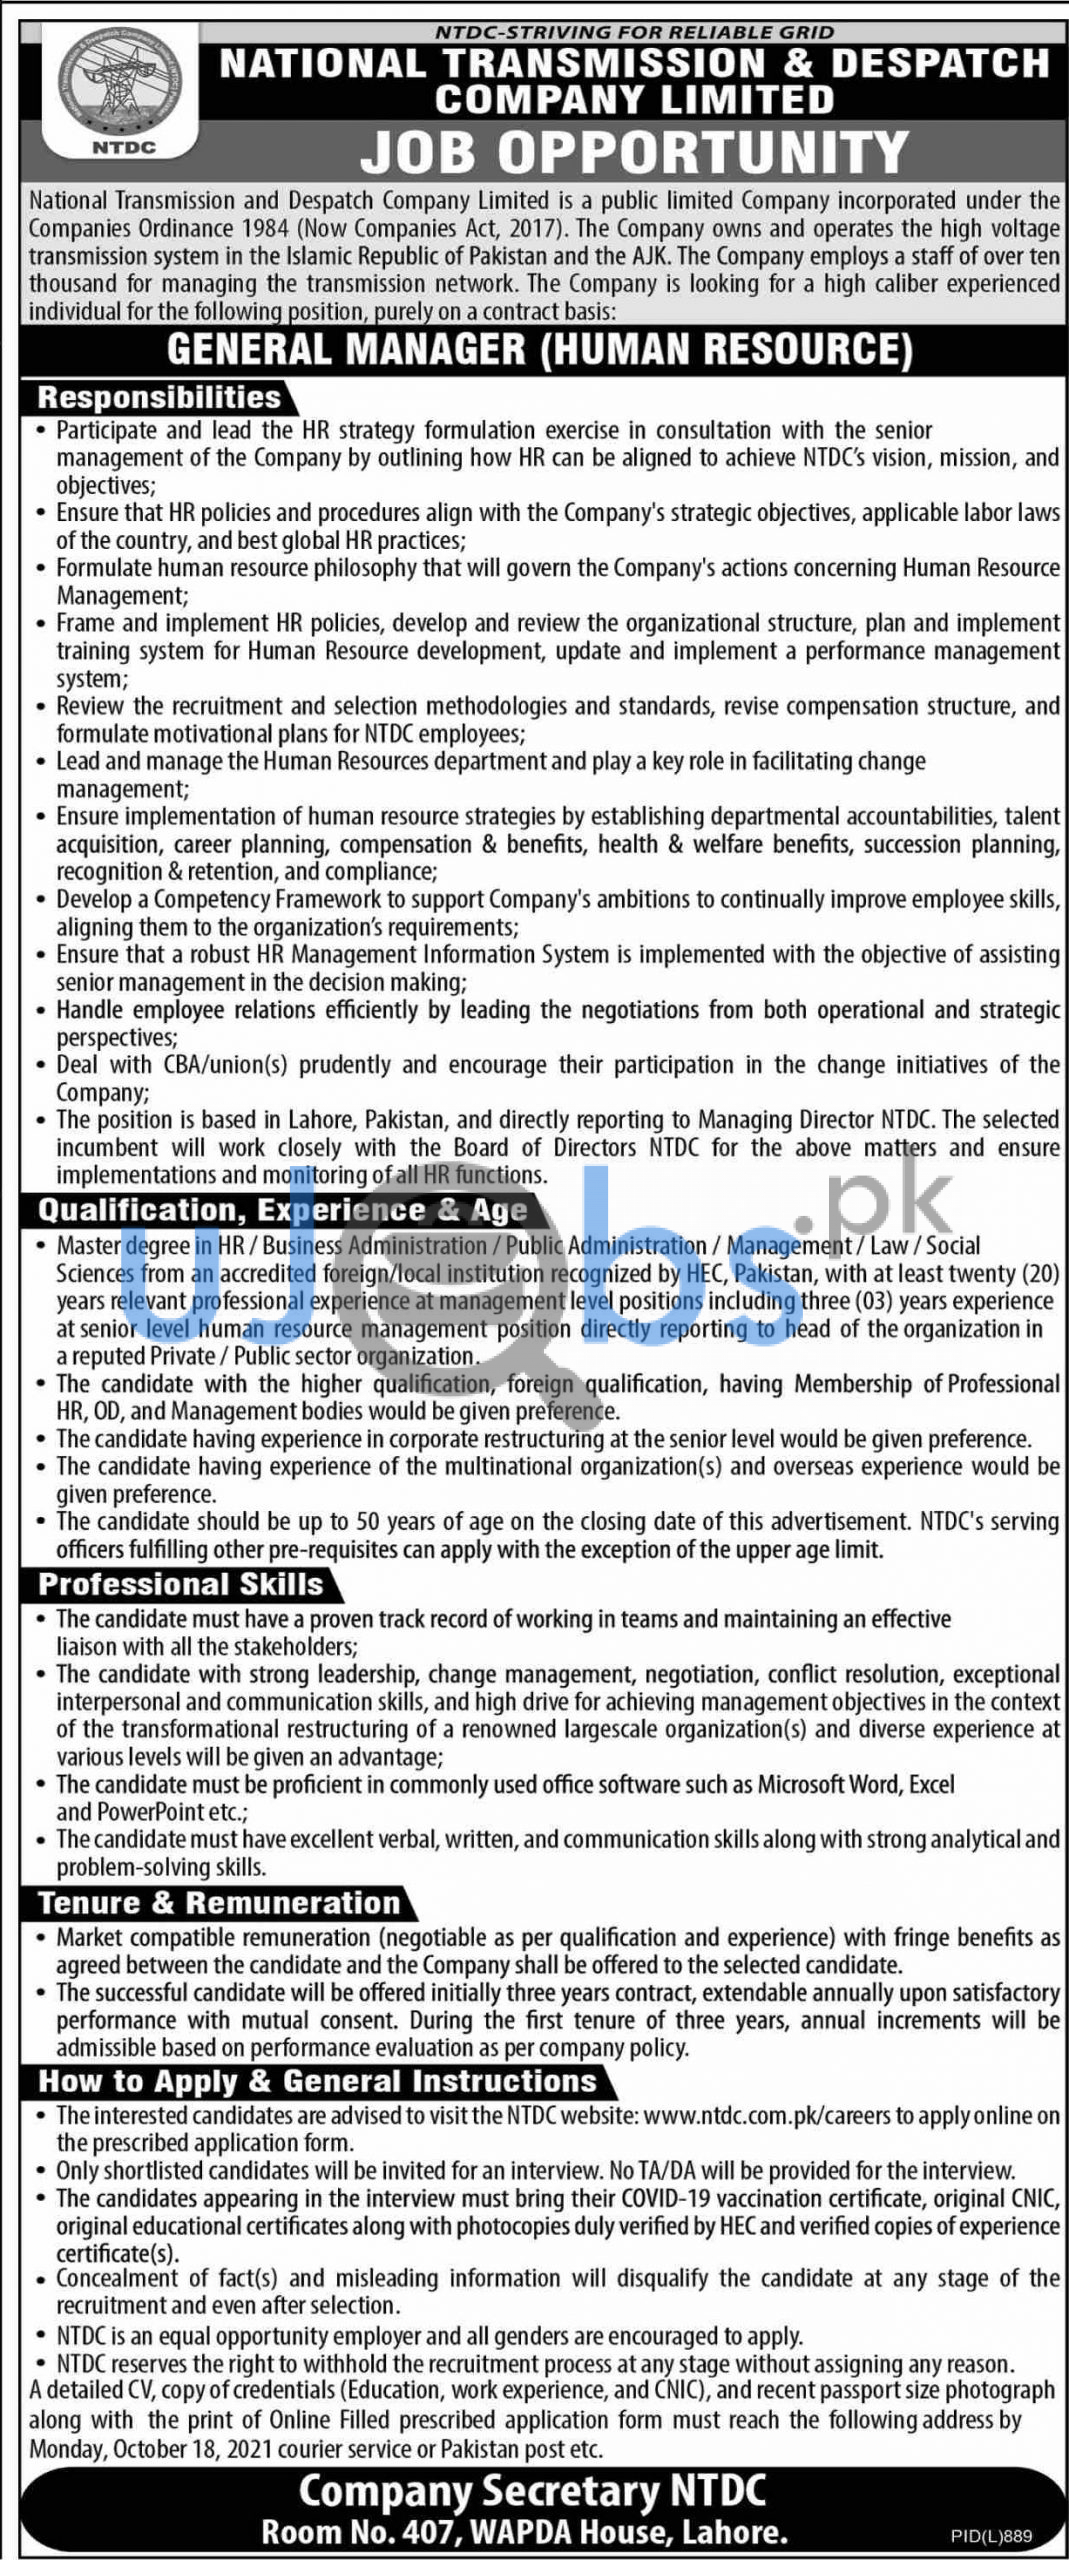 National Transmission and Despatch Company NTDC Jobs 2021